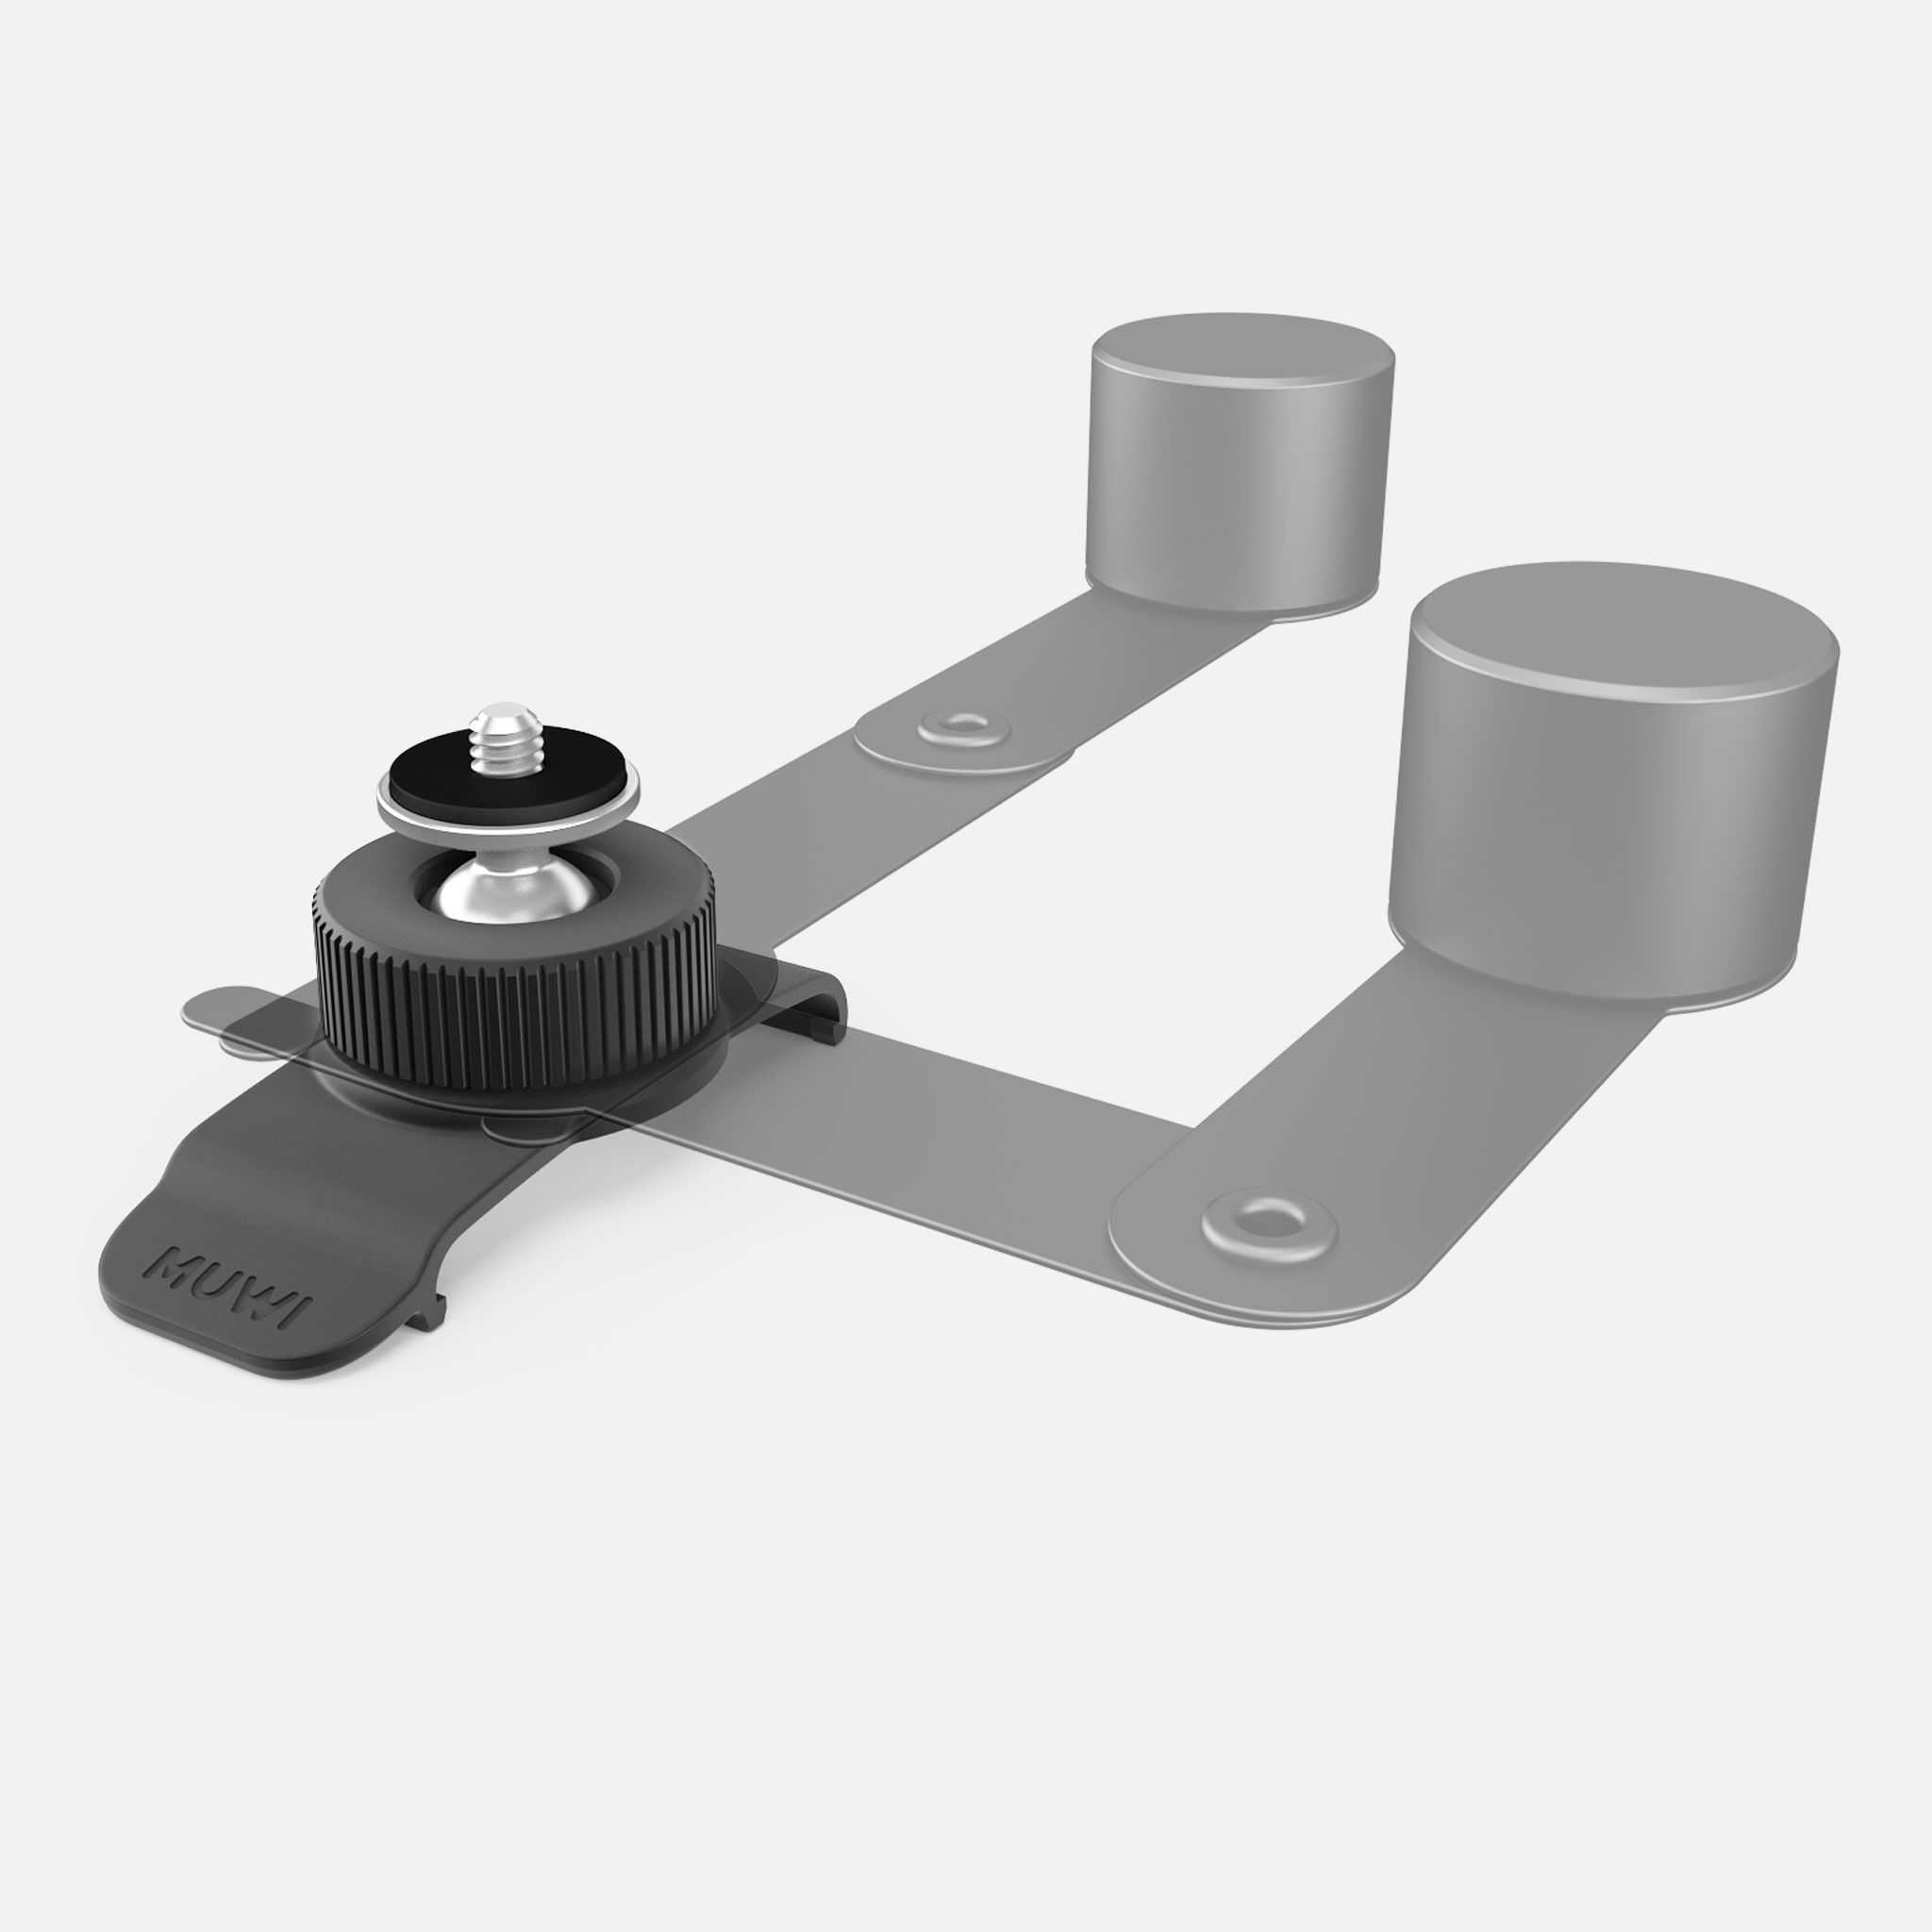 Swivel Clip is compatible with Muwi, Flow, Flow X, Track and Counter Balance Module